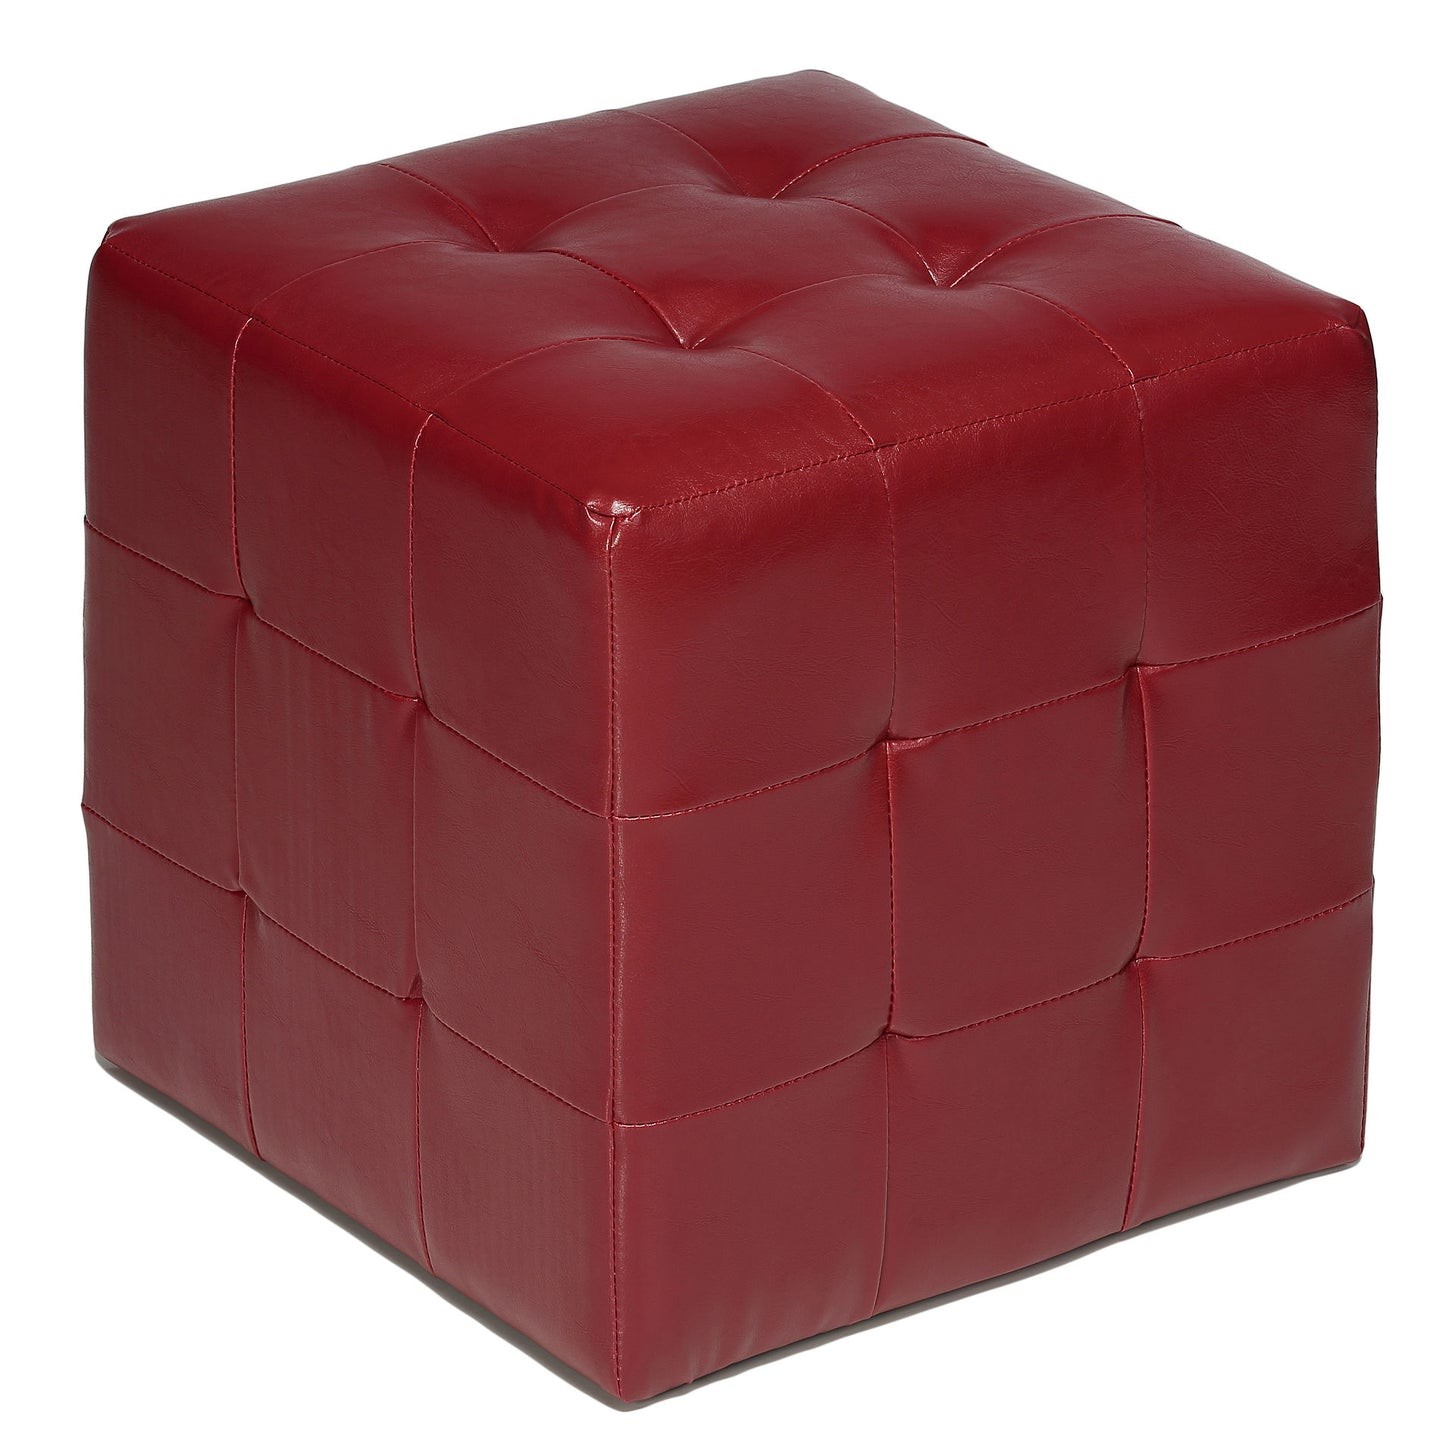 Cortesi Home Braque Red Tufted Cube Ottoman in Leather like Vinyl